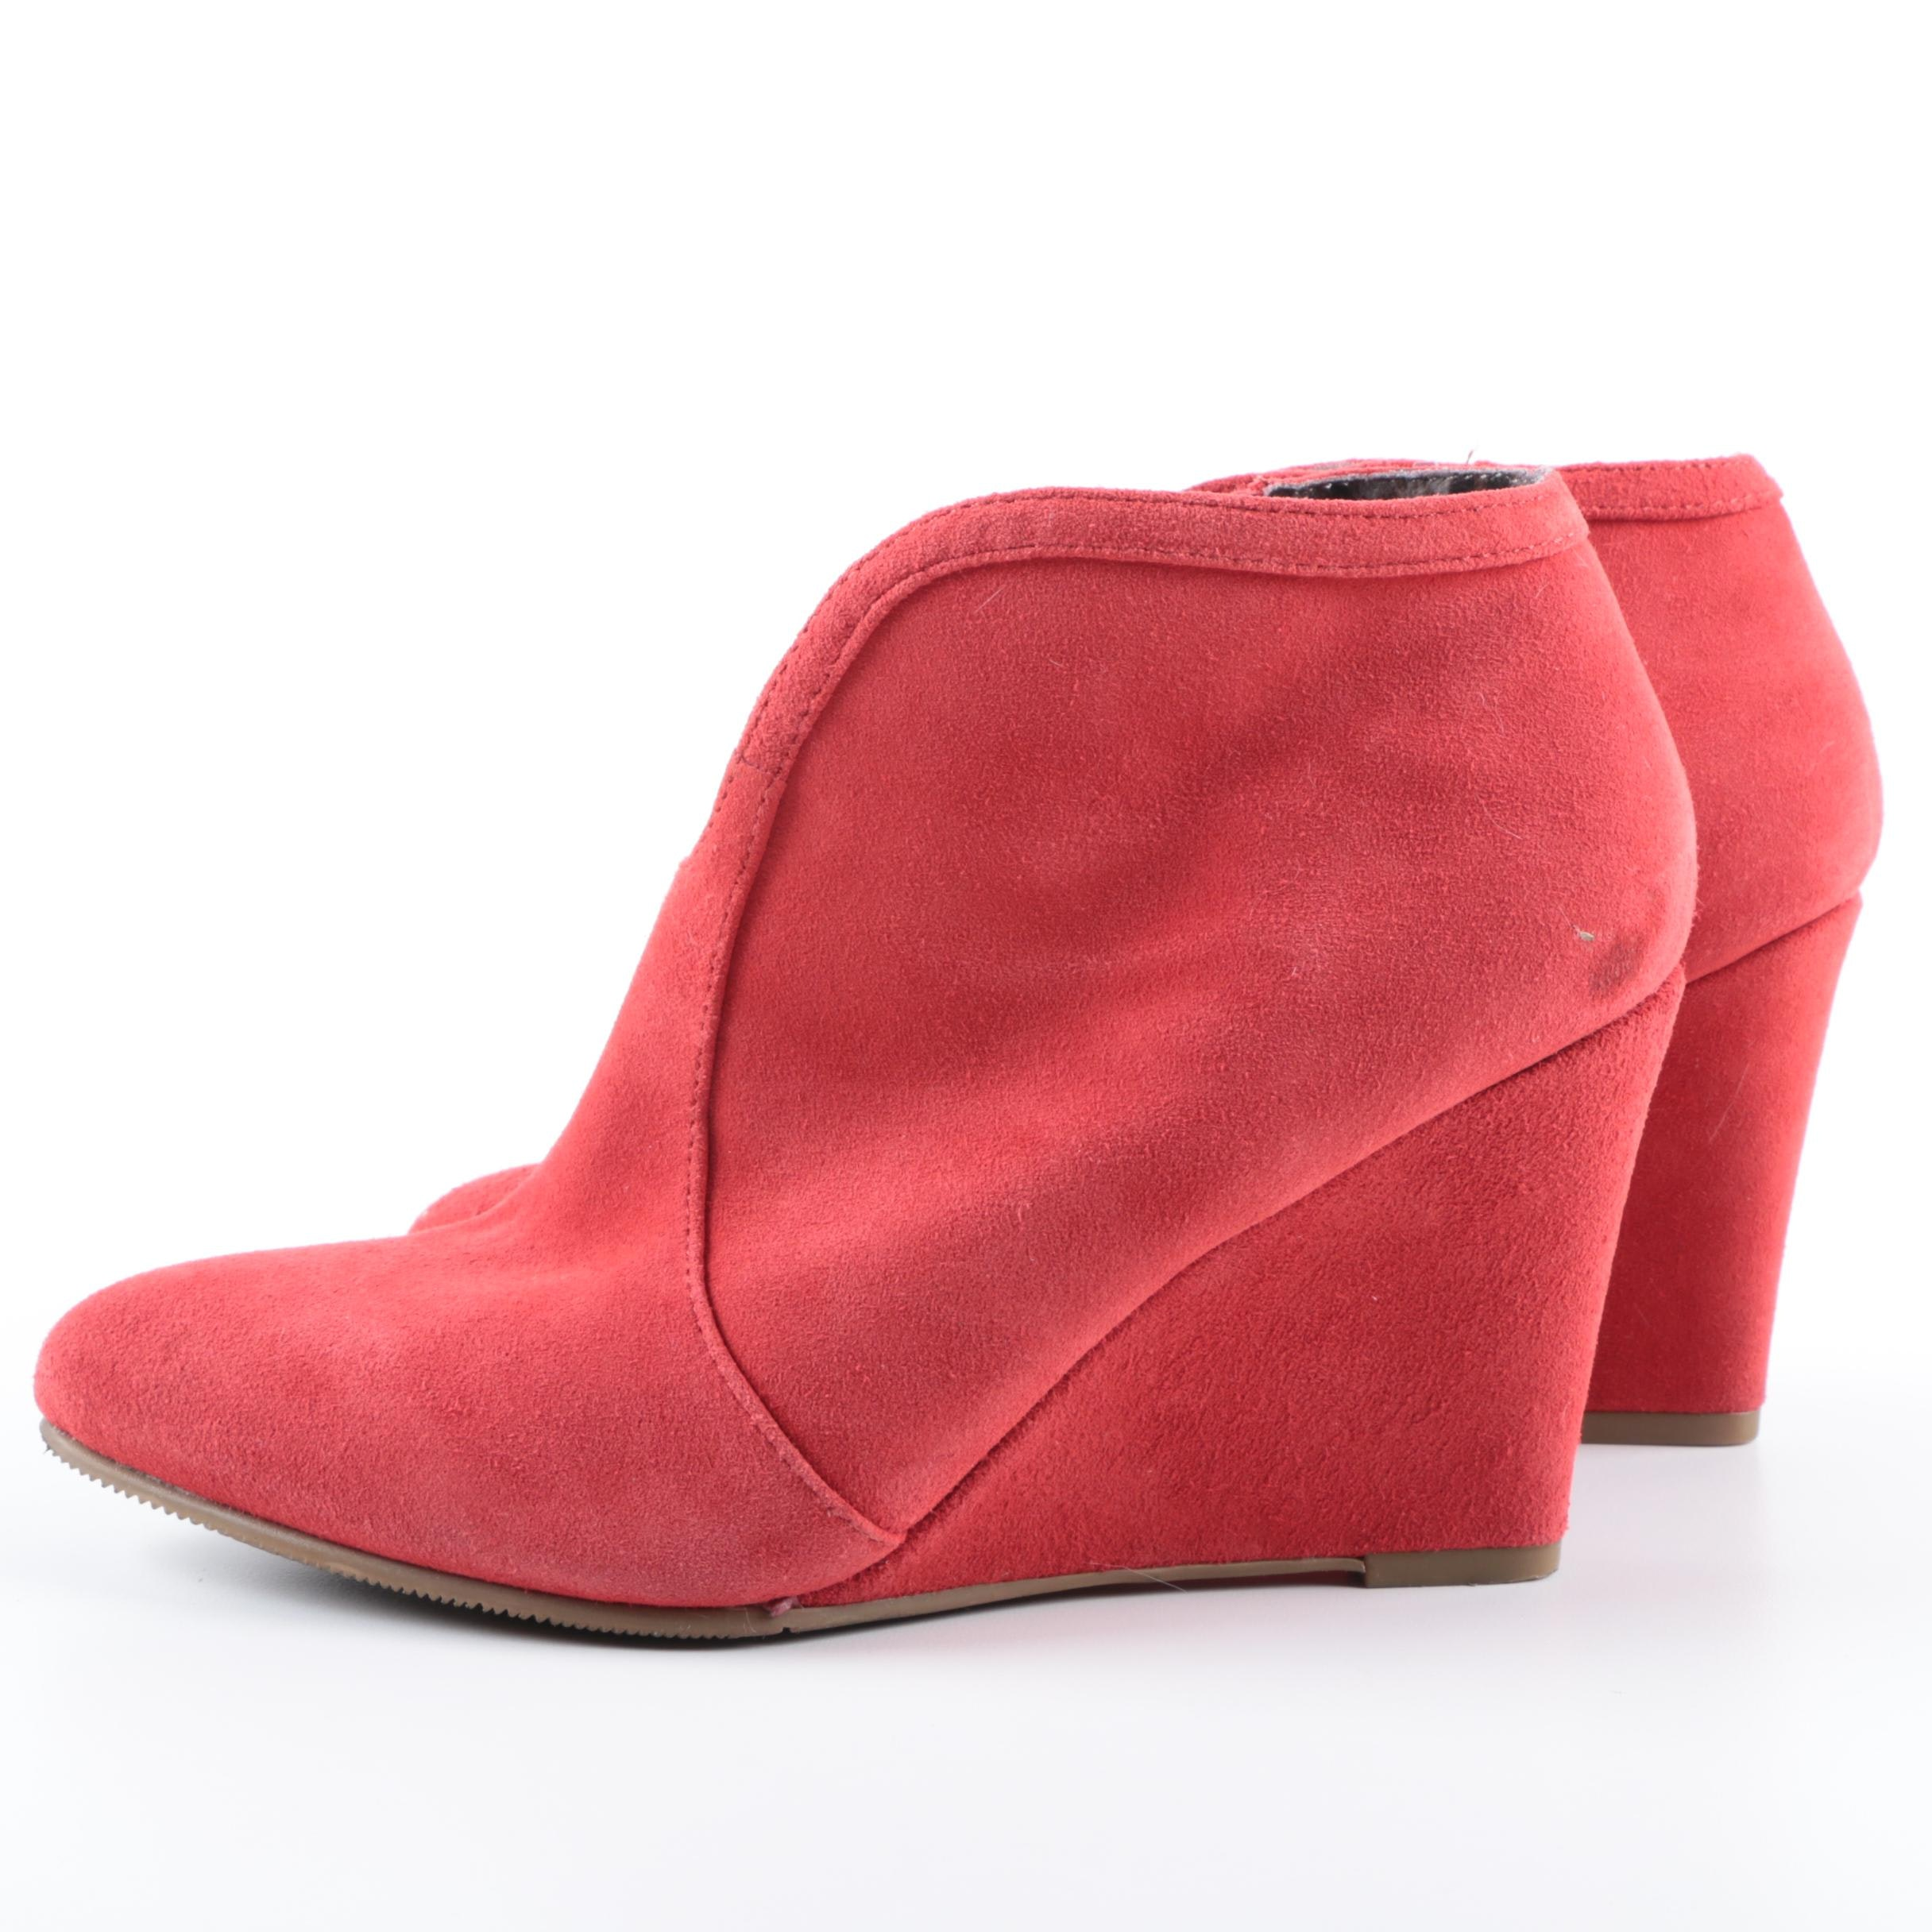 Women's Envy Lyka Red Suede Wedge Booties